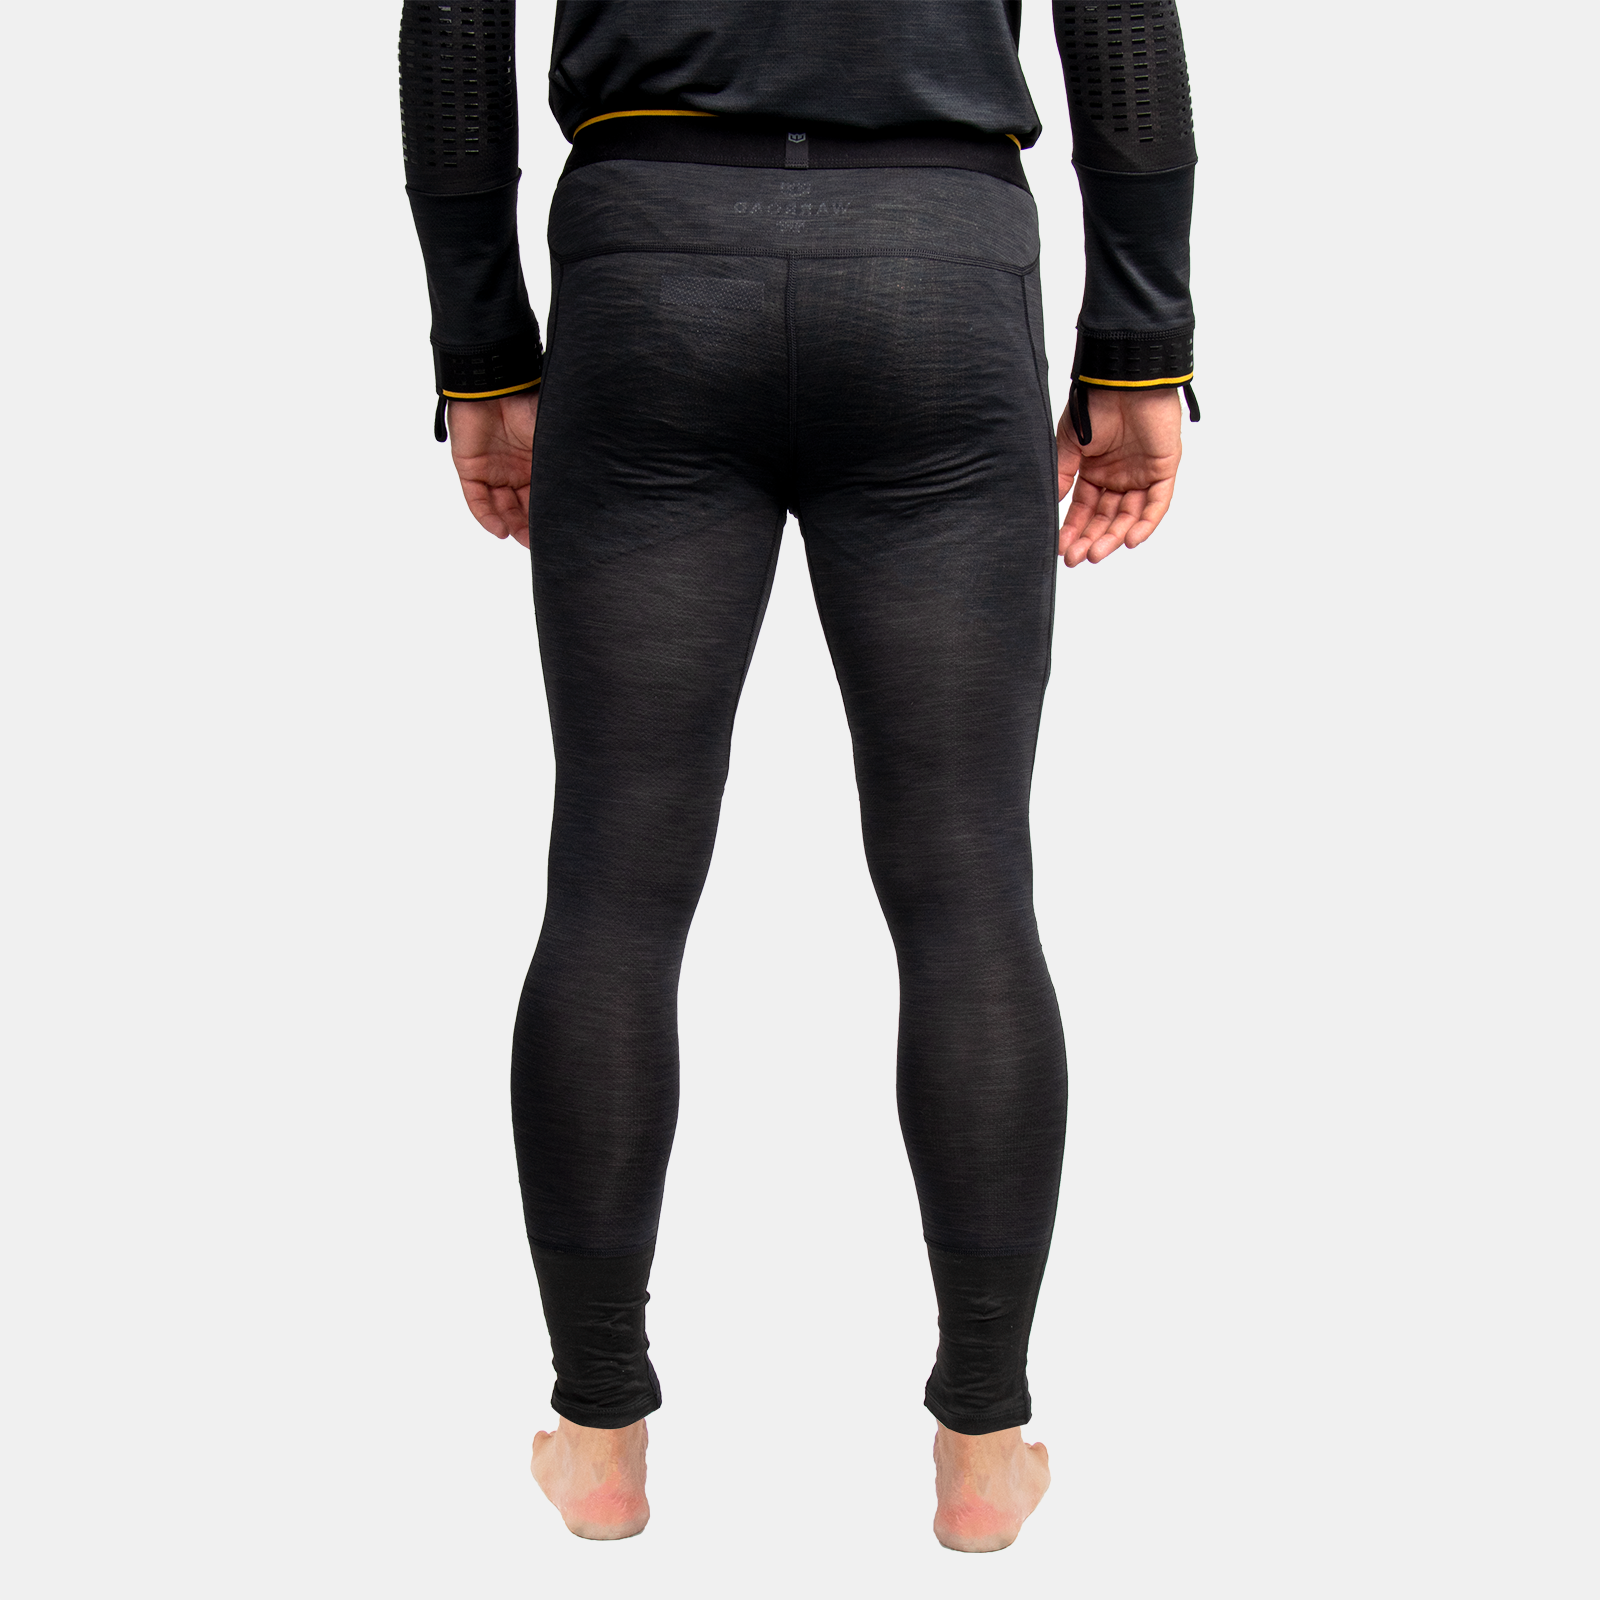 TILO Pro CR Bottoms - Black